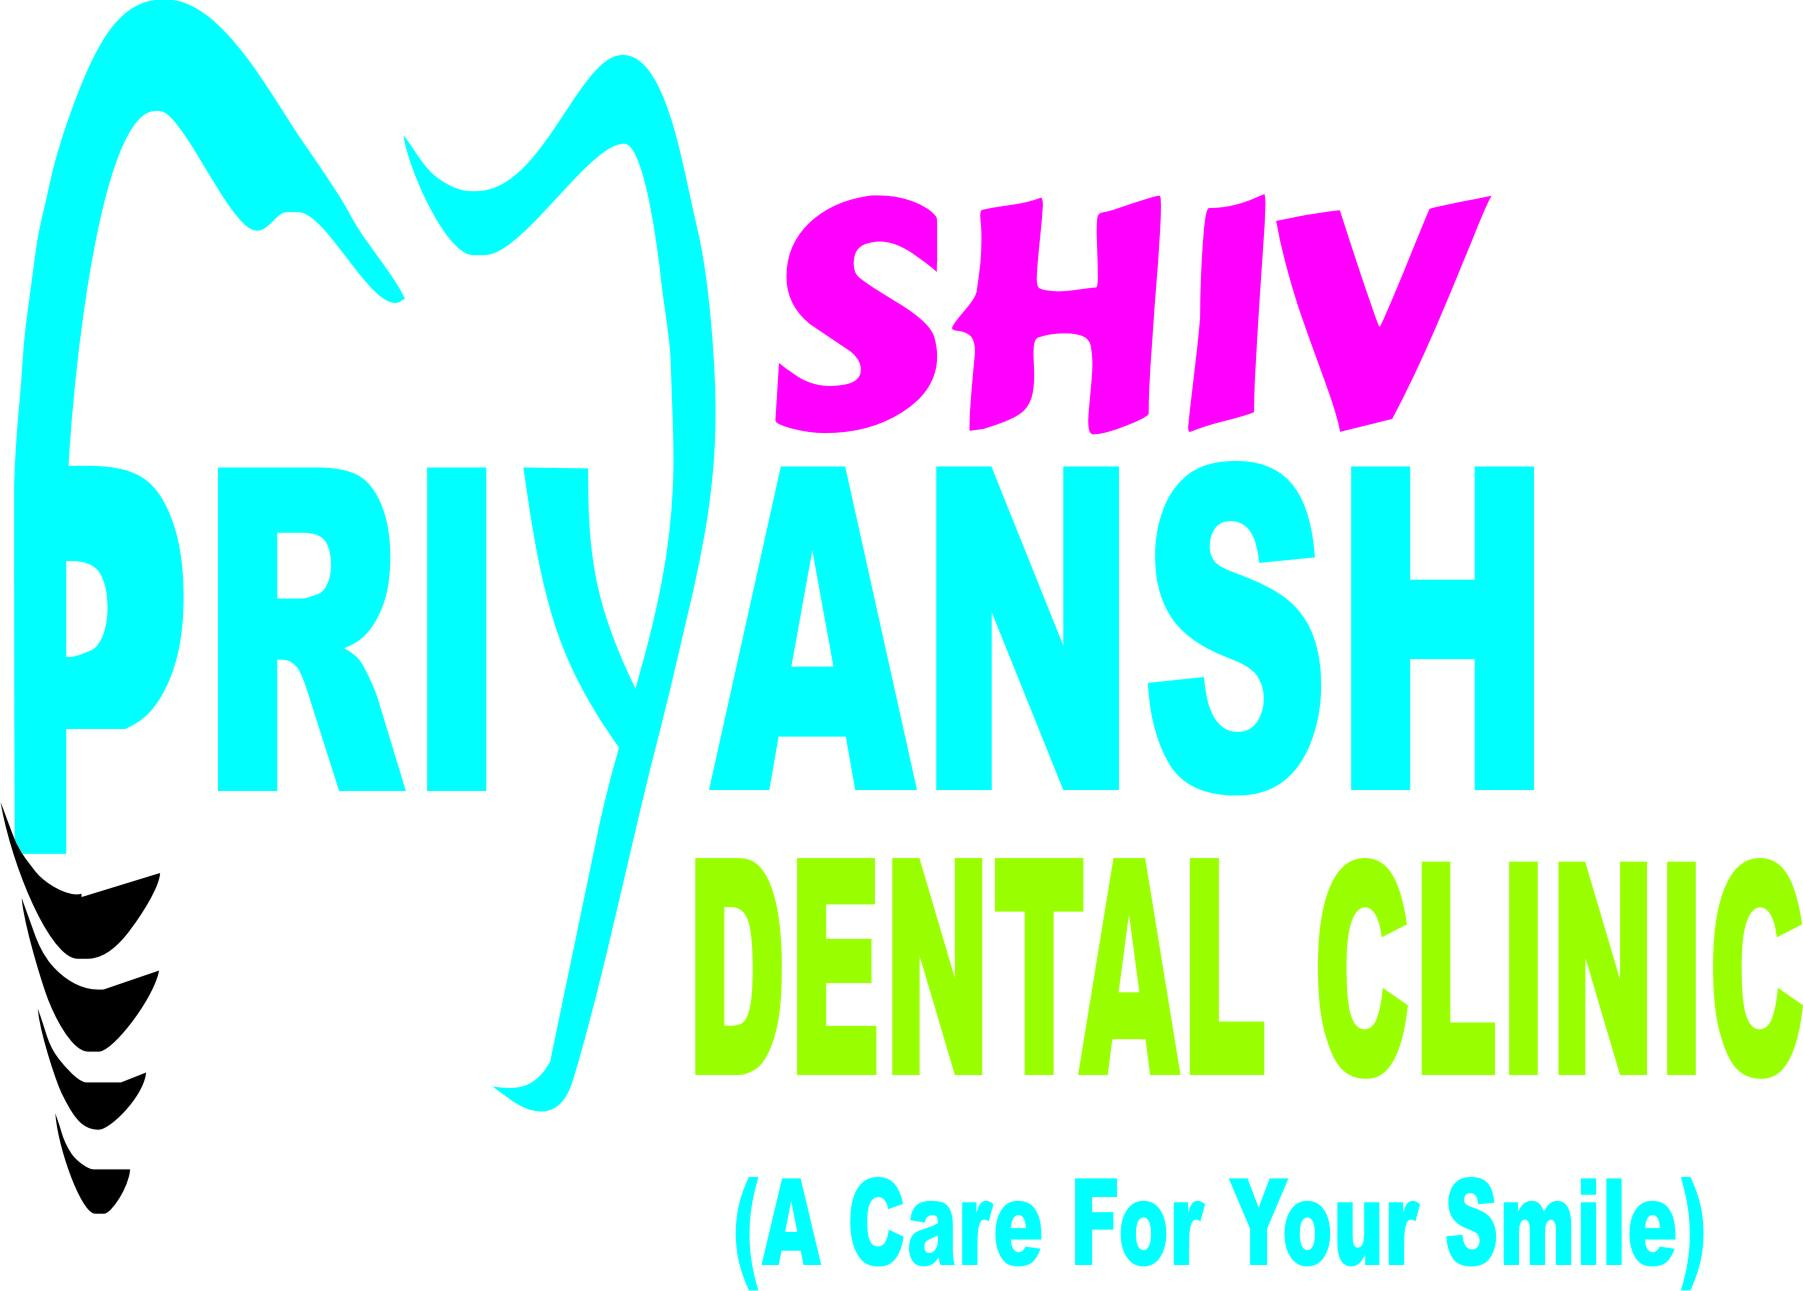 Shiv Priyansh Dental Clinic